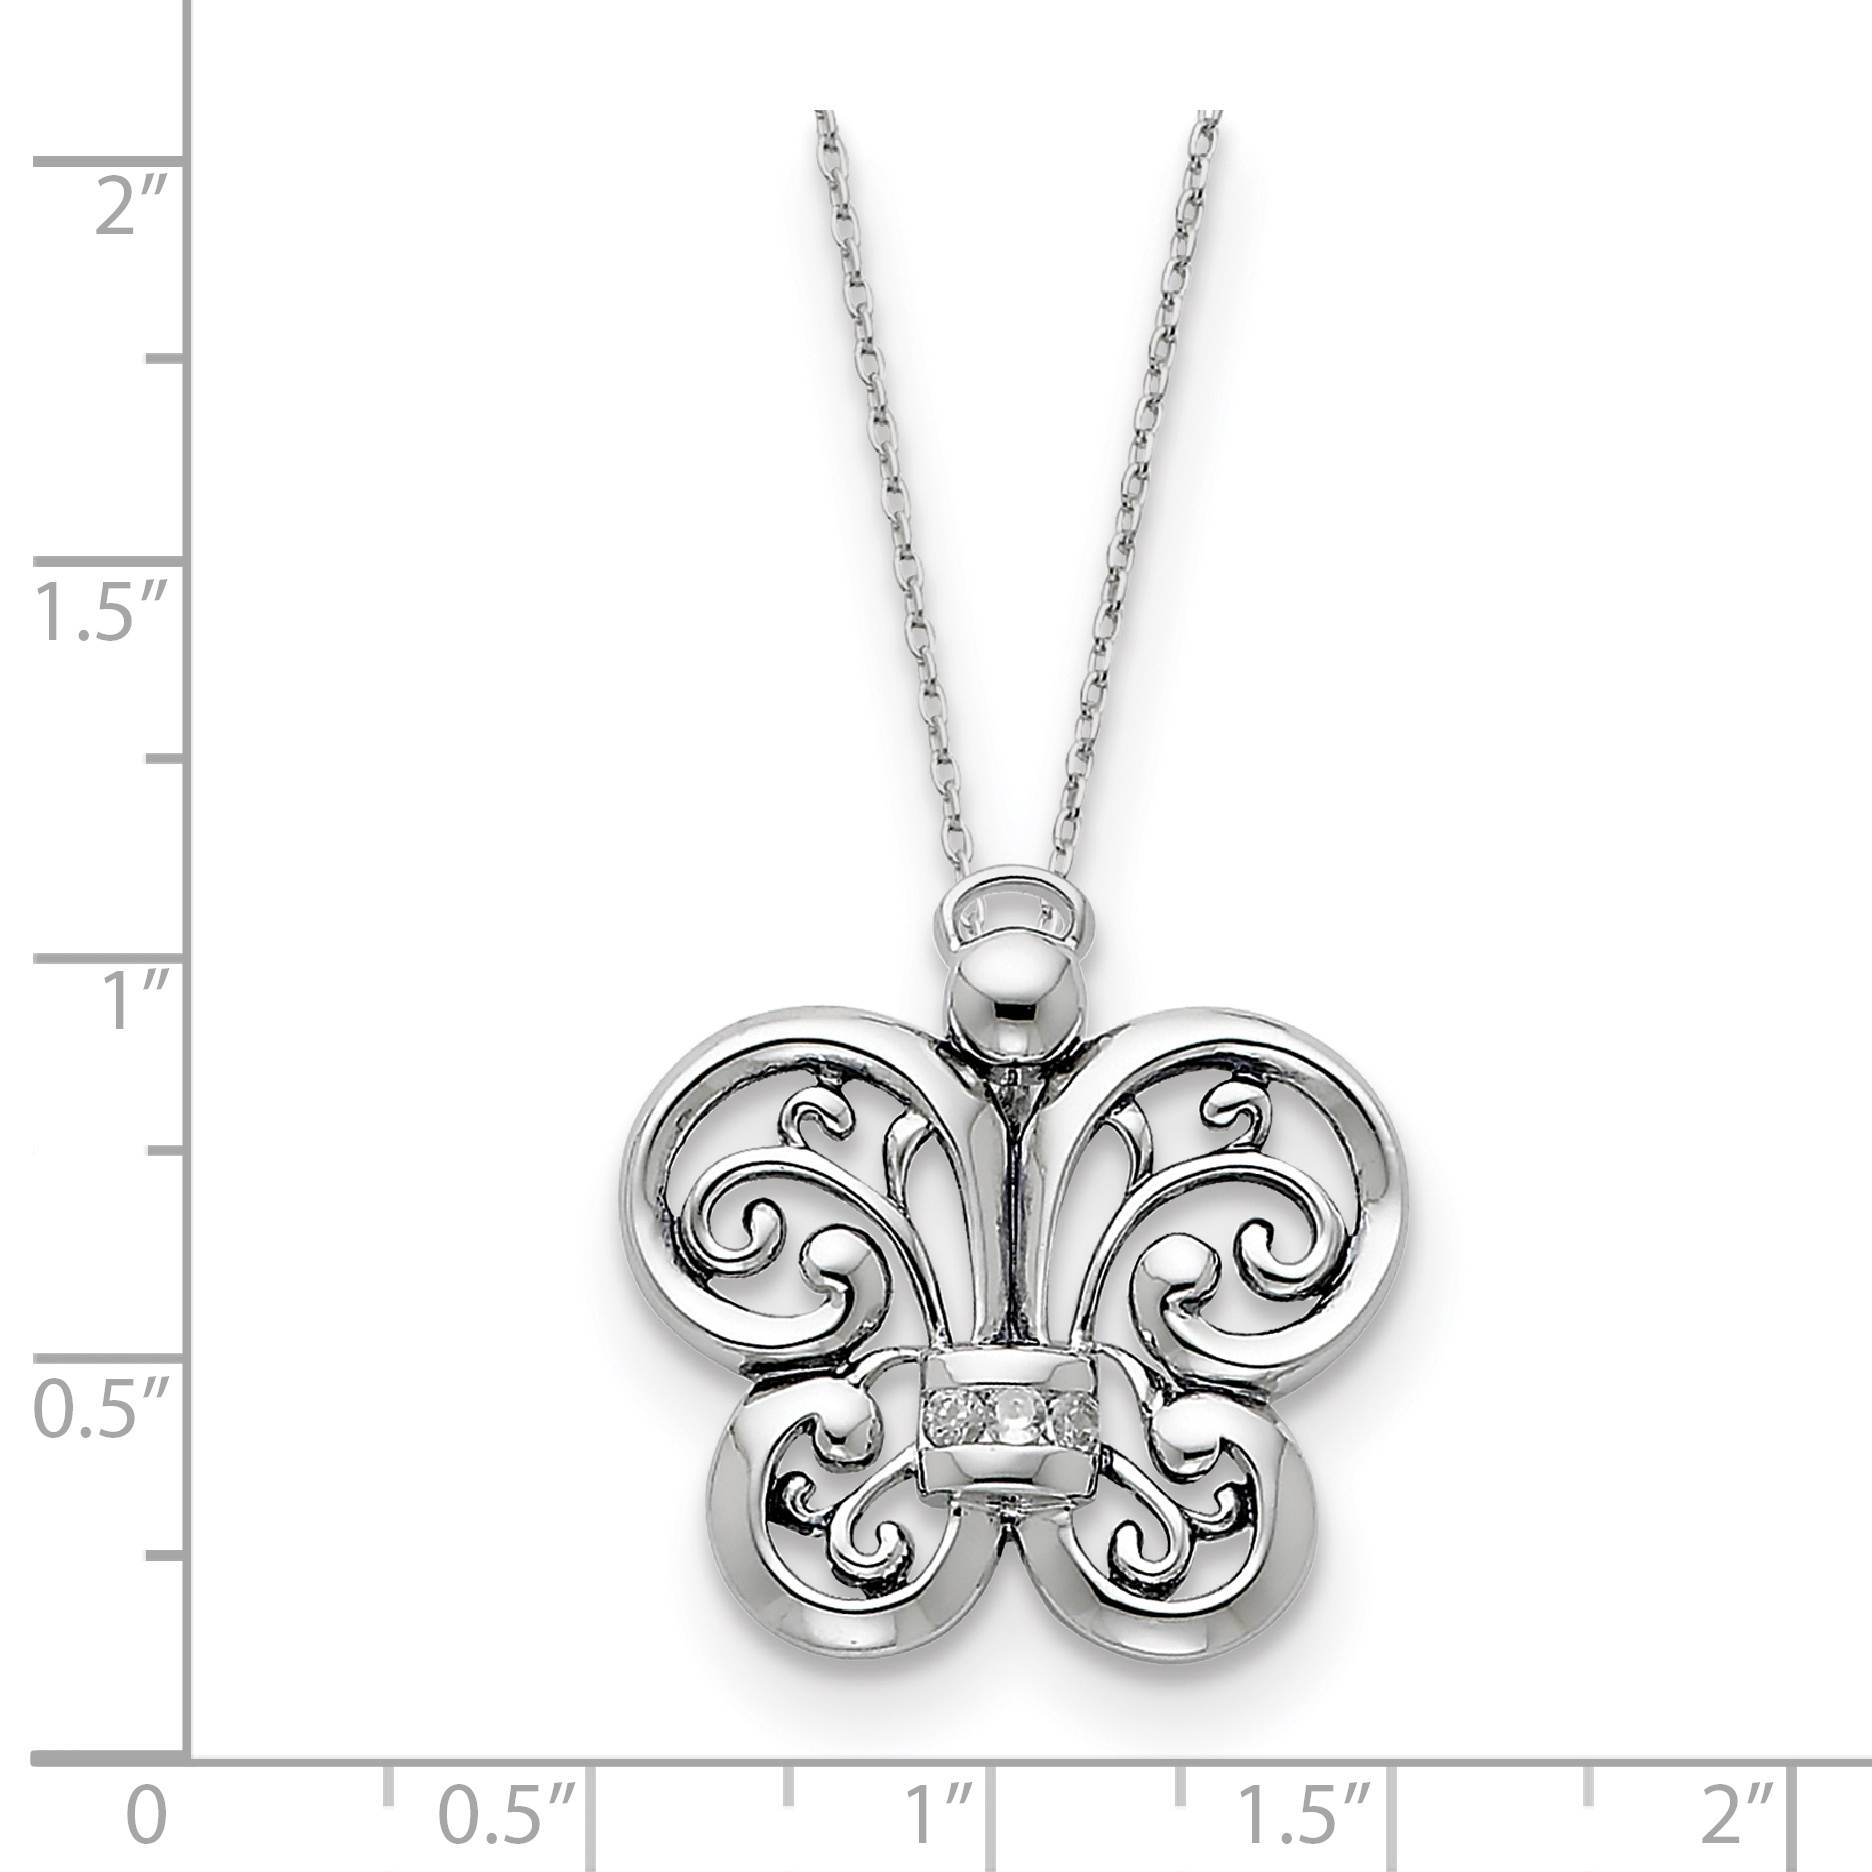 Sterling Silver Antiqued CZ Angel of Courage 18in Necklace 18 Inch - image 1 of 3